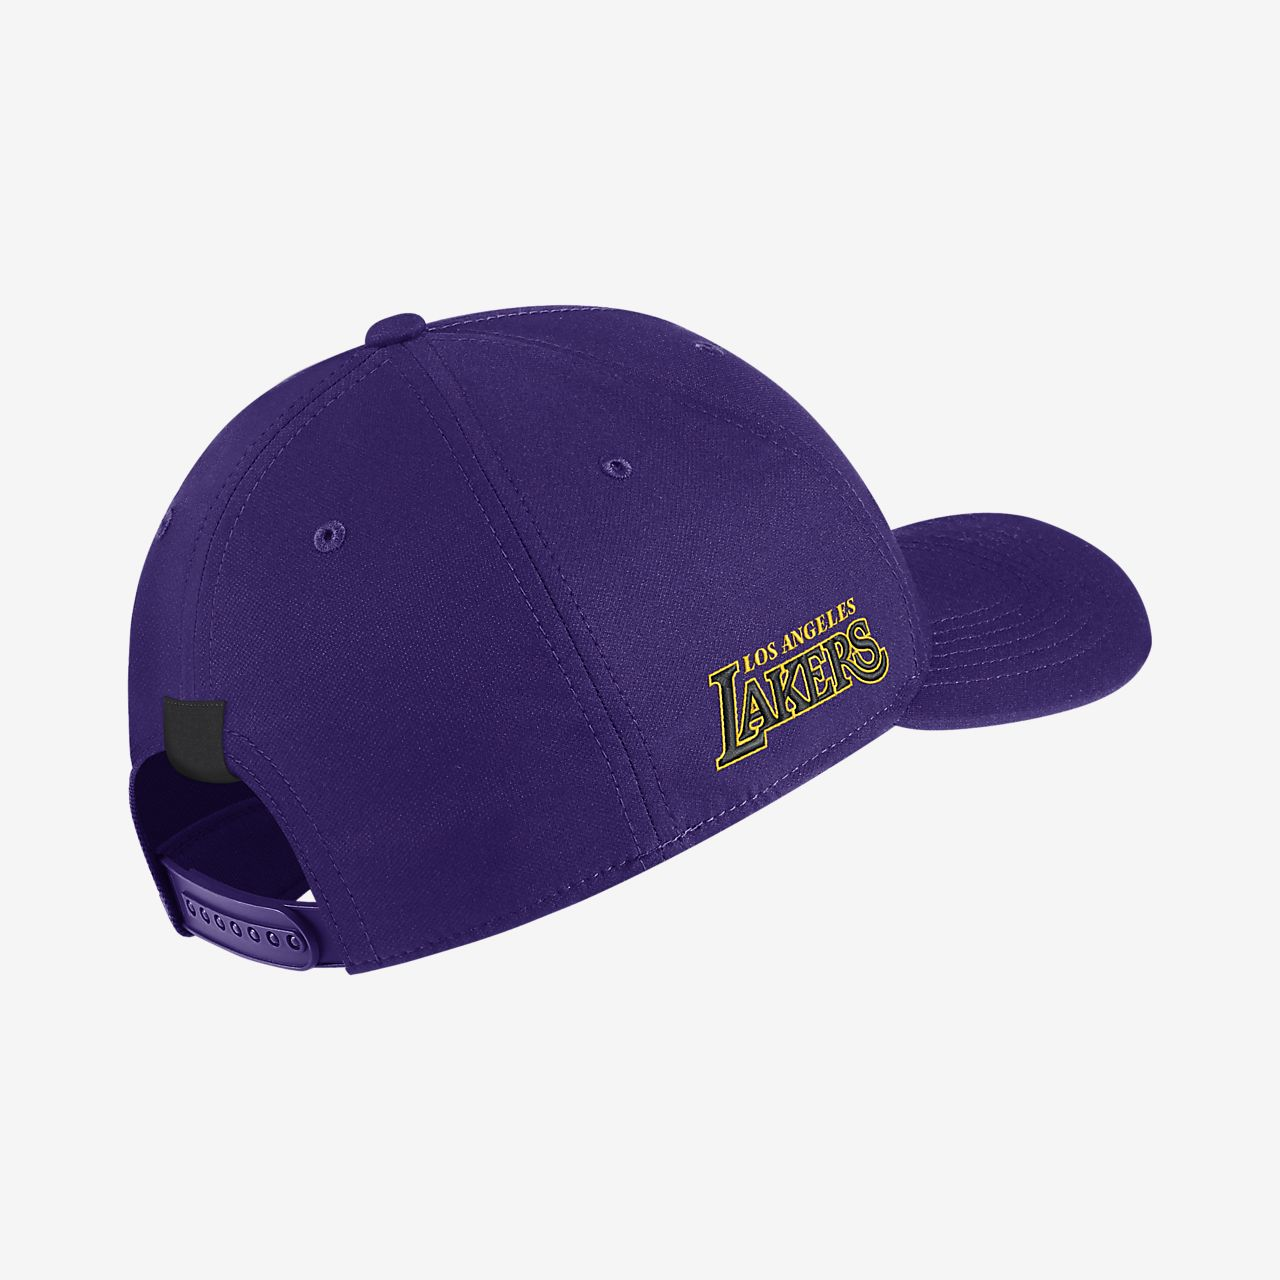 172a18646b Los Angeles Lakers City Edition Nike AeroBill Classic99 NBA Hat ...